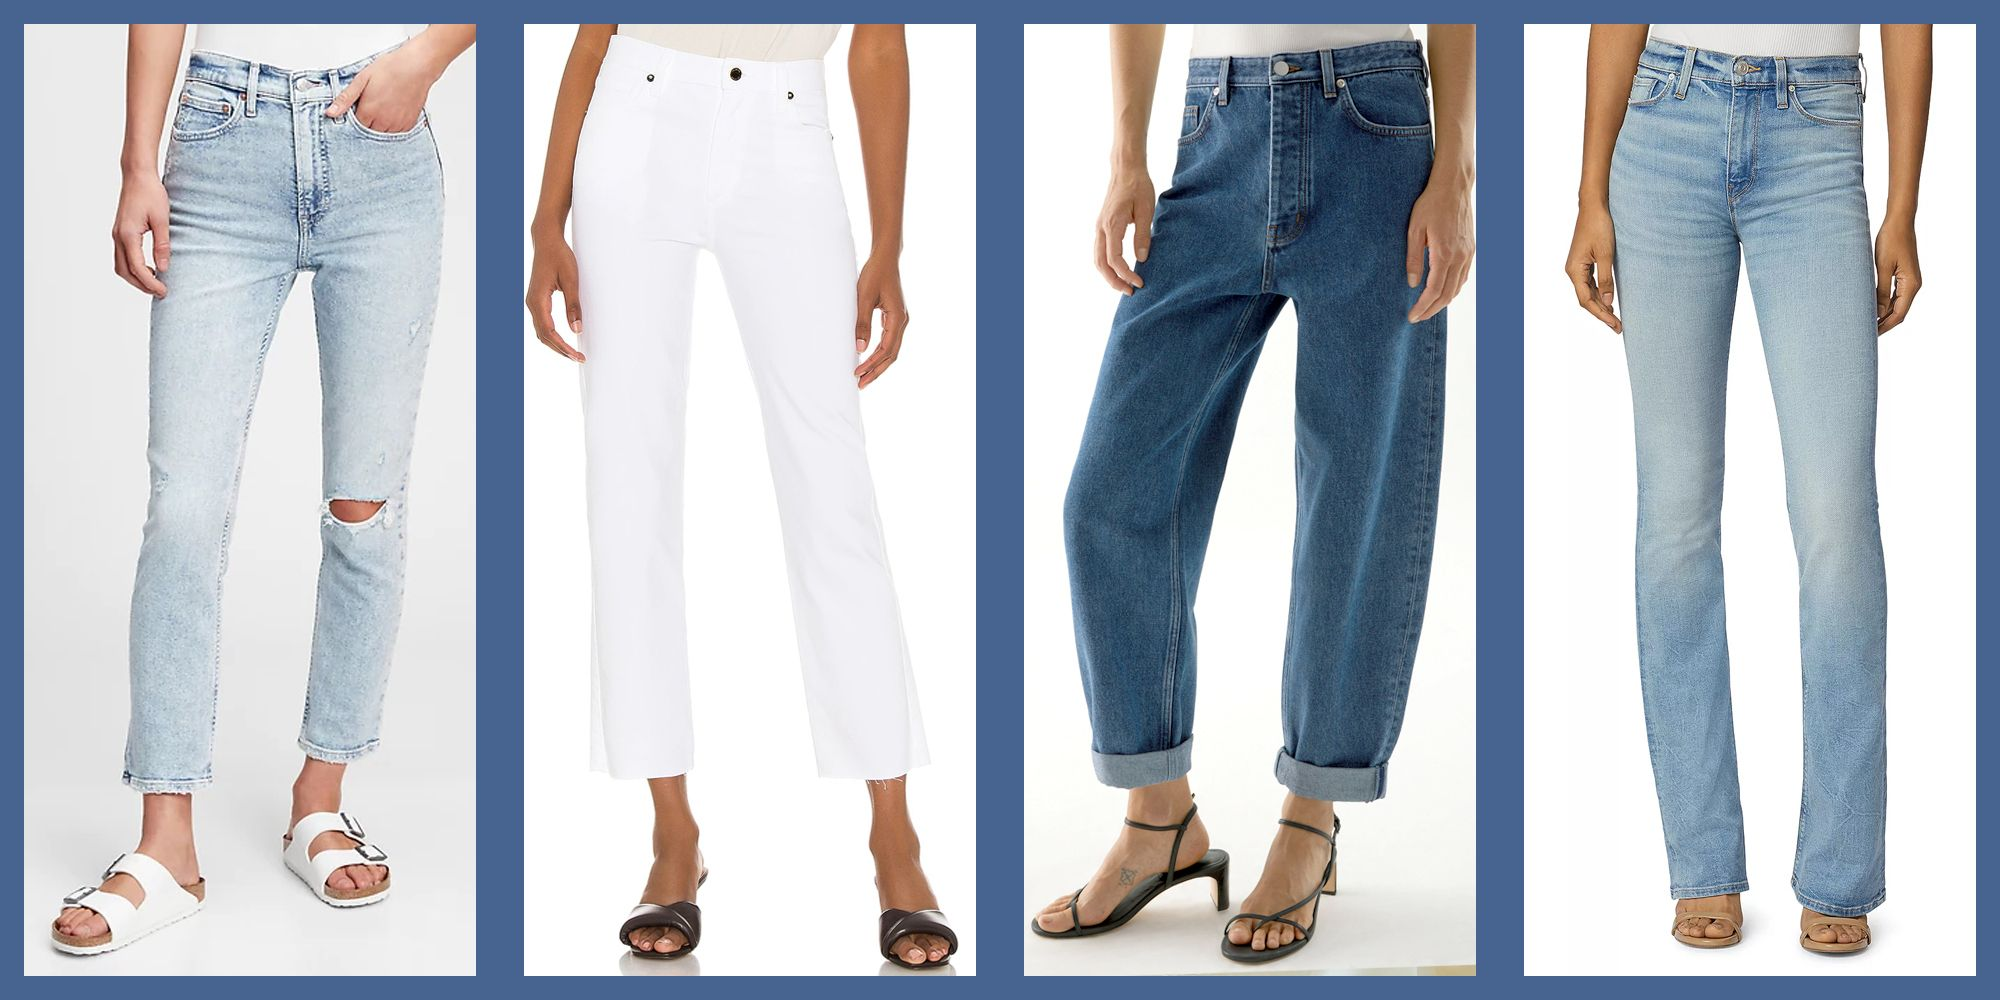 Looking For the Best Designer Jeans For Women?